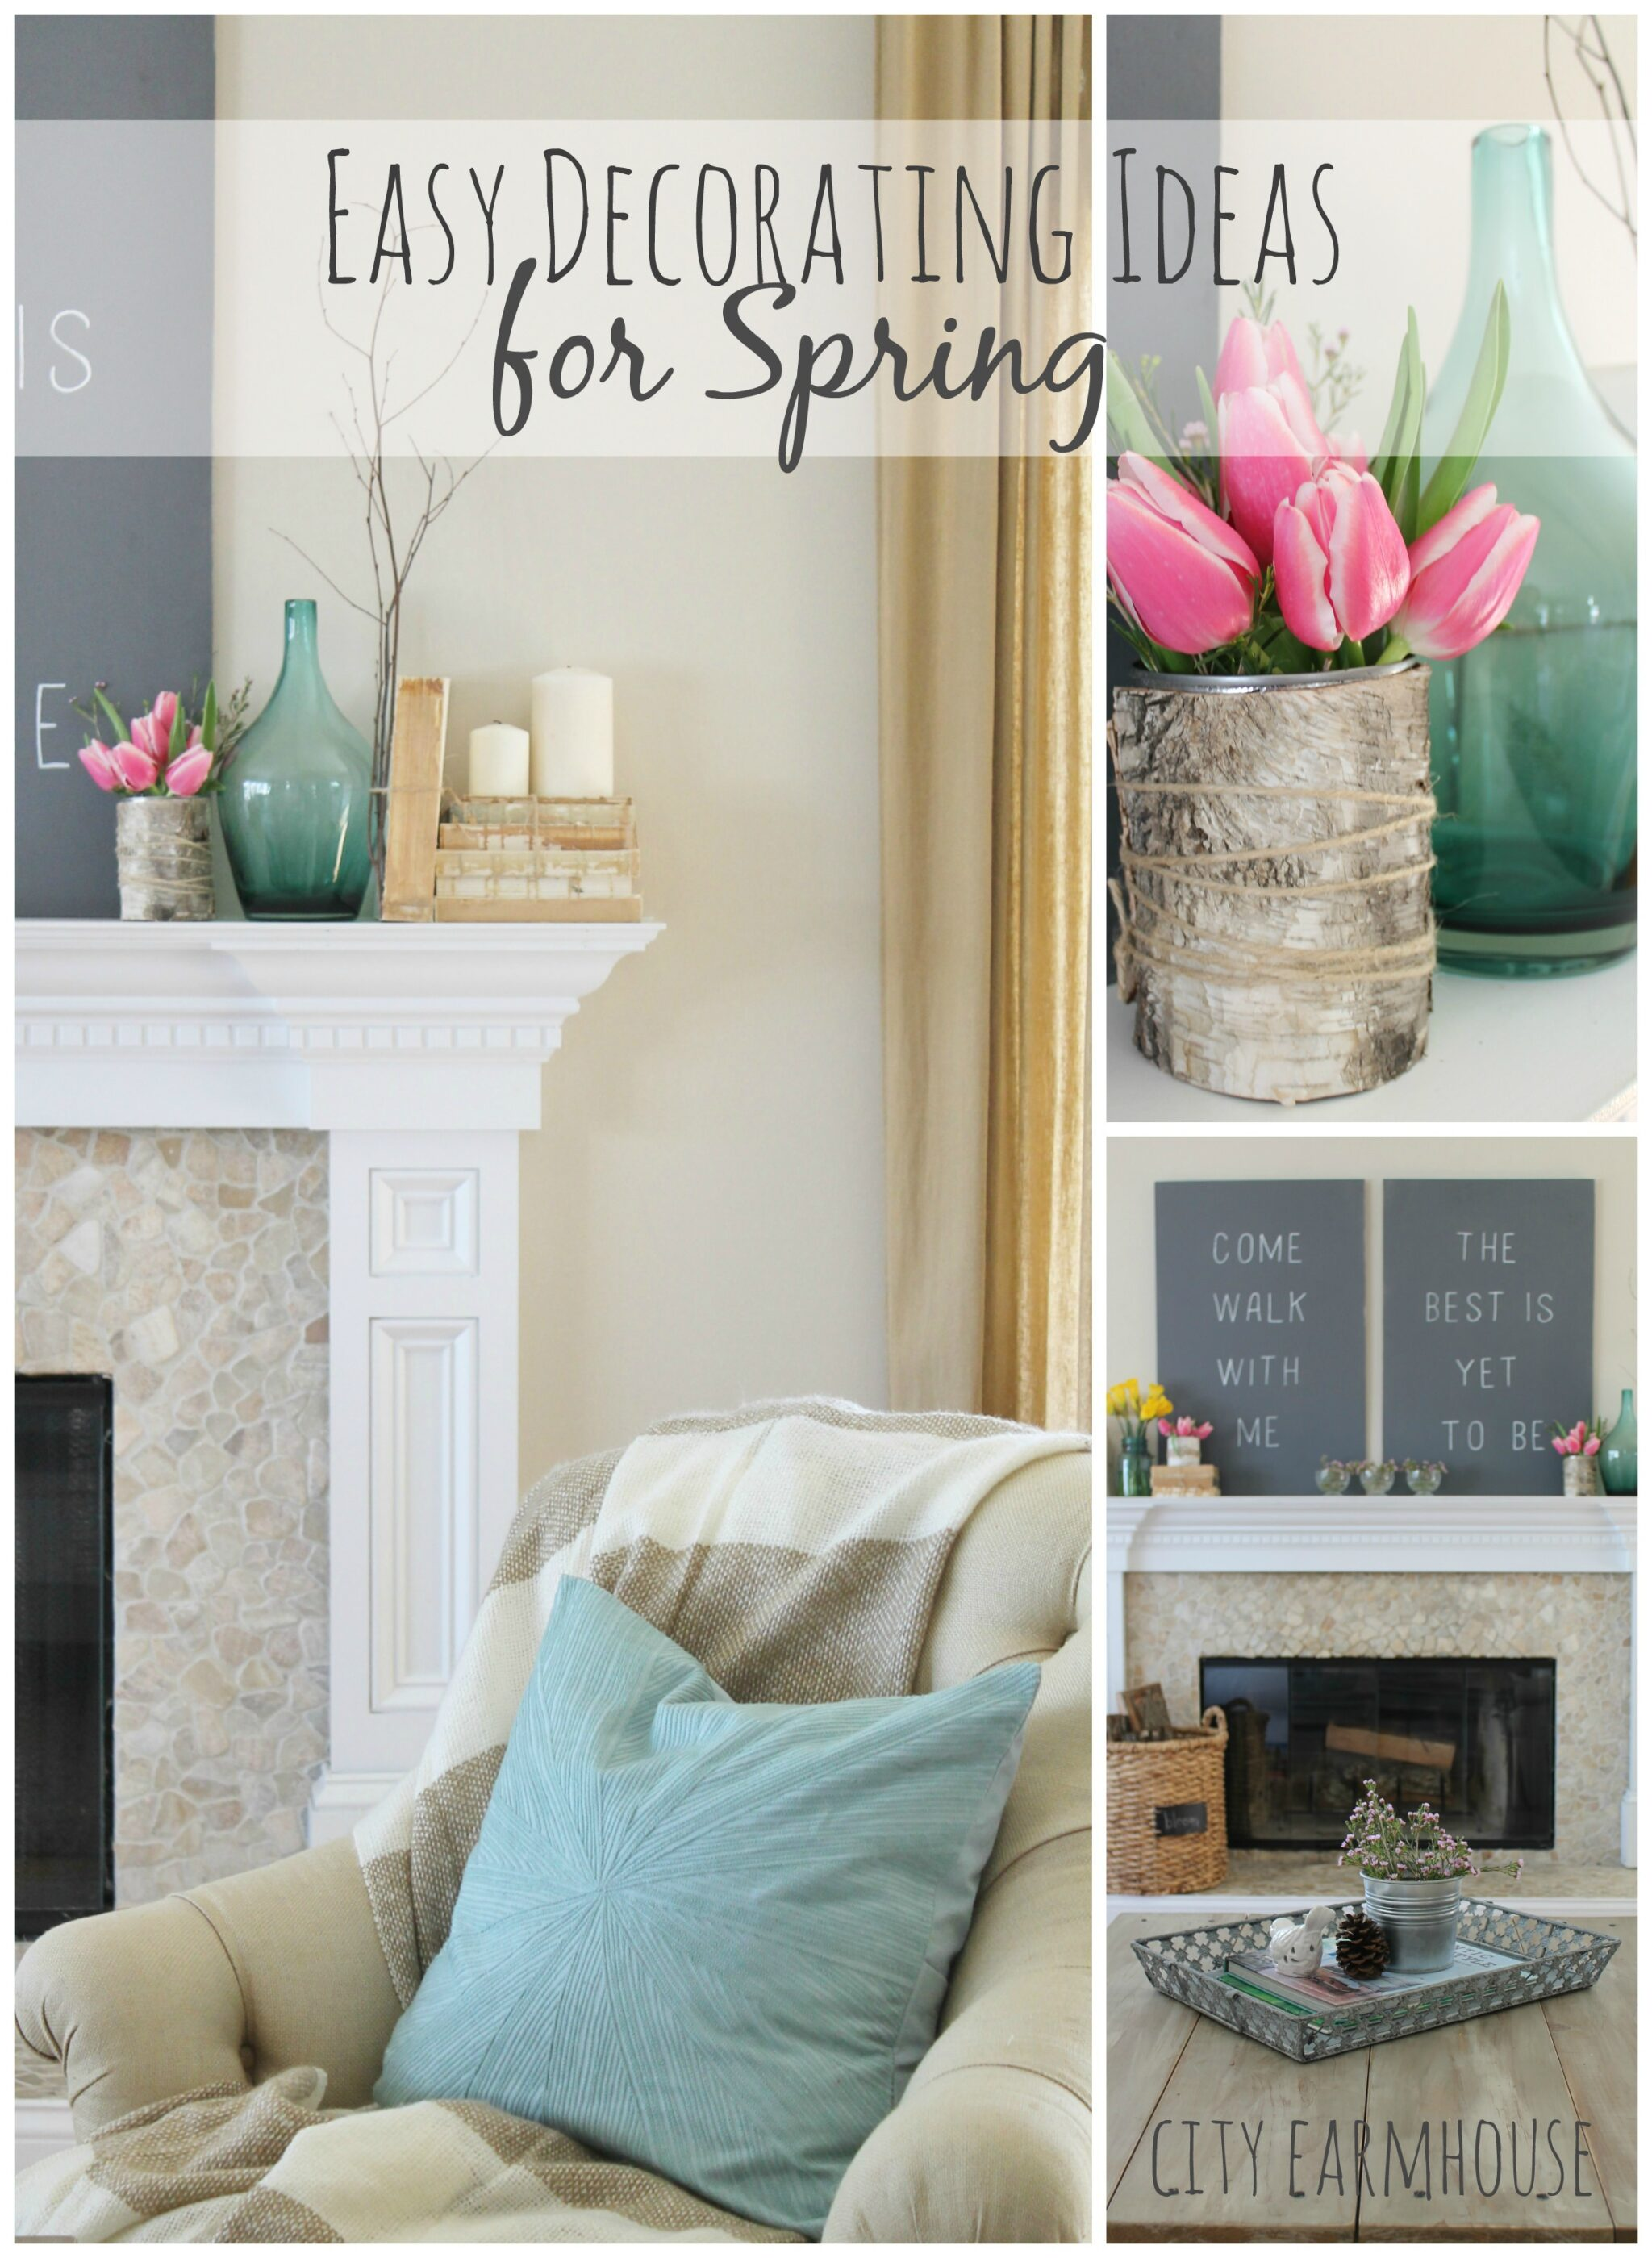 Seasons Of Home- Easy Decorating Ideas for Spring - City Farmhouse